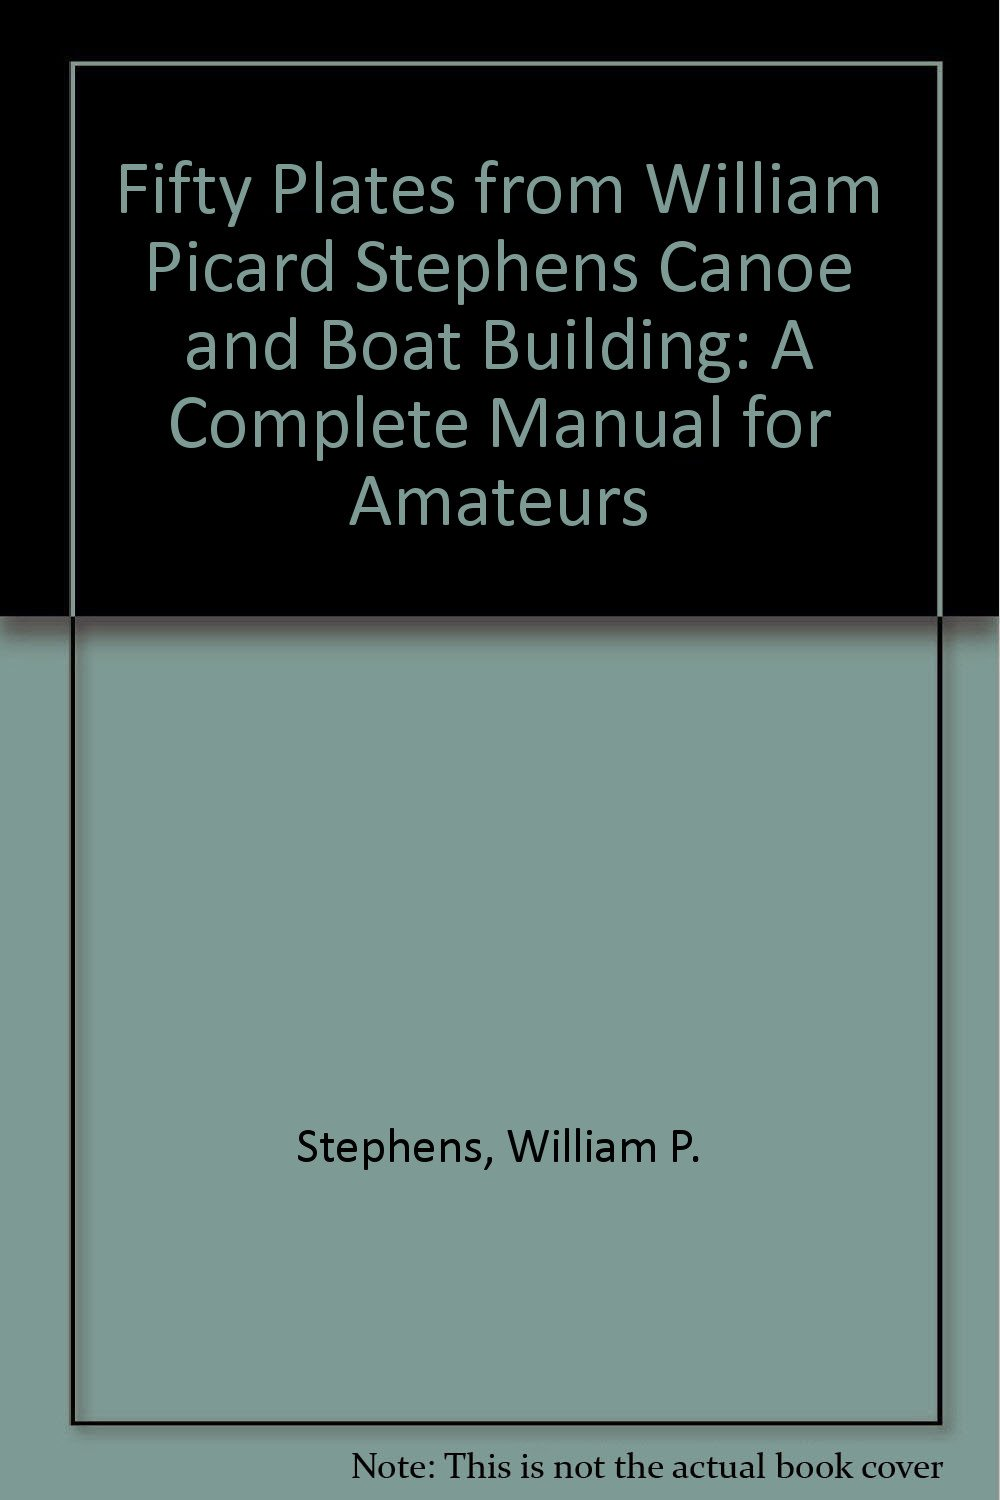 Fifty Plates from William Picard Stephens Canoe and Boat Building: A Complete Manual for Amateurs